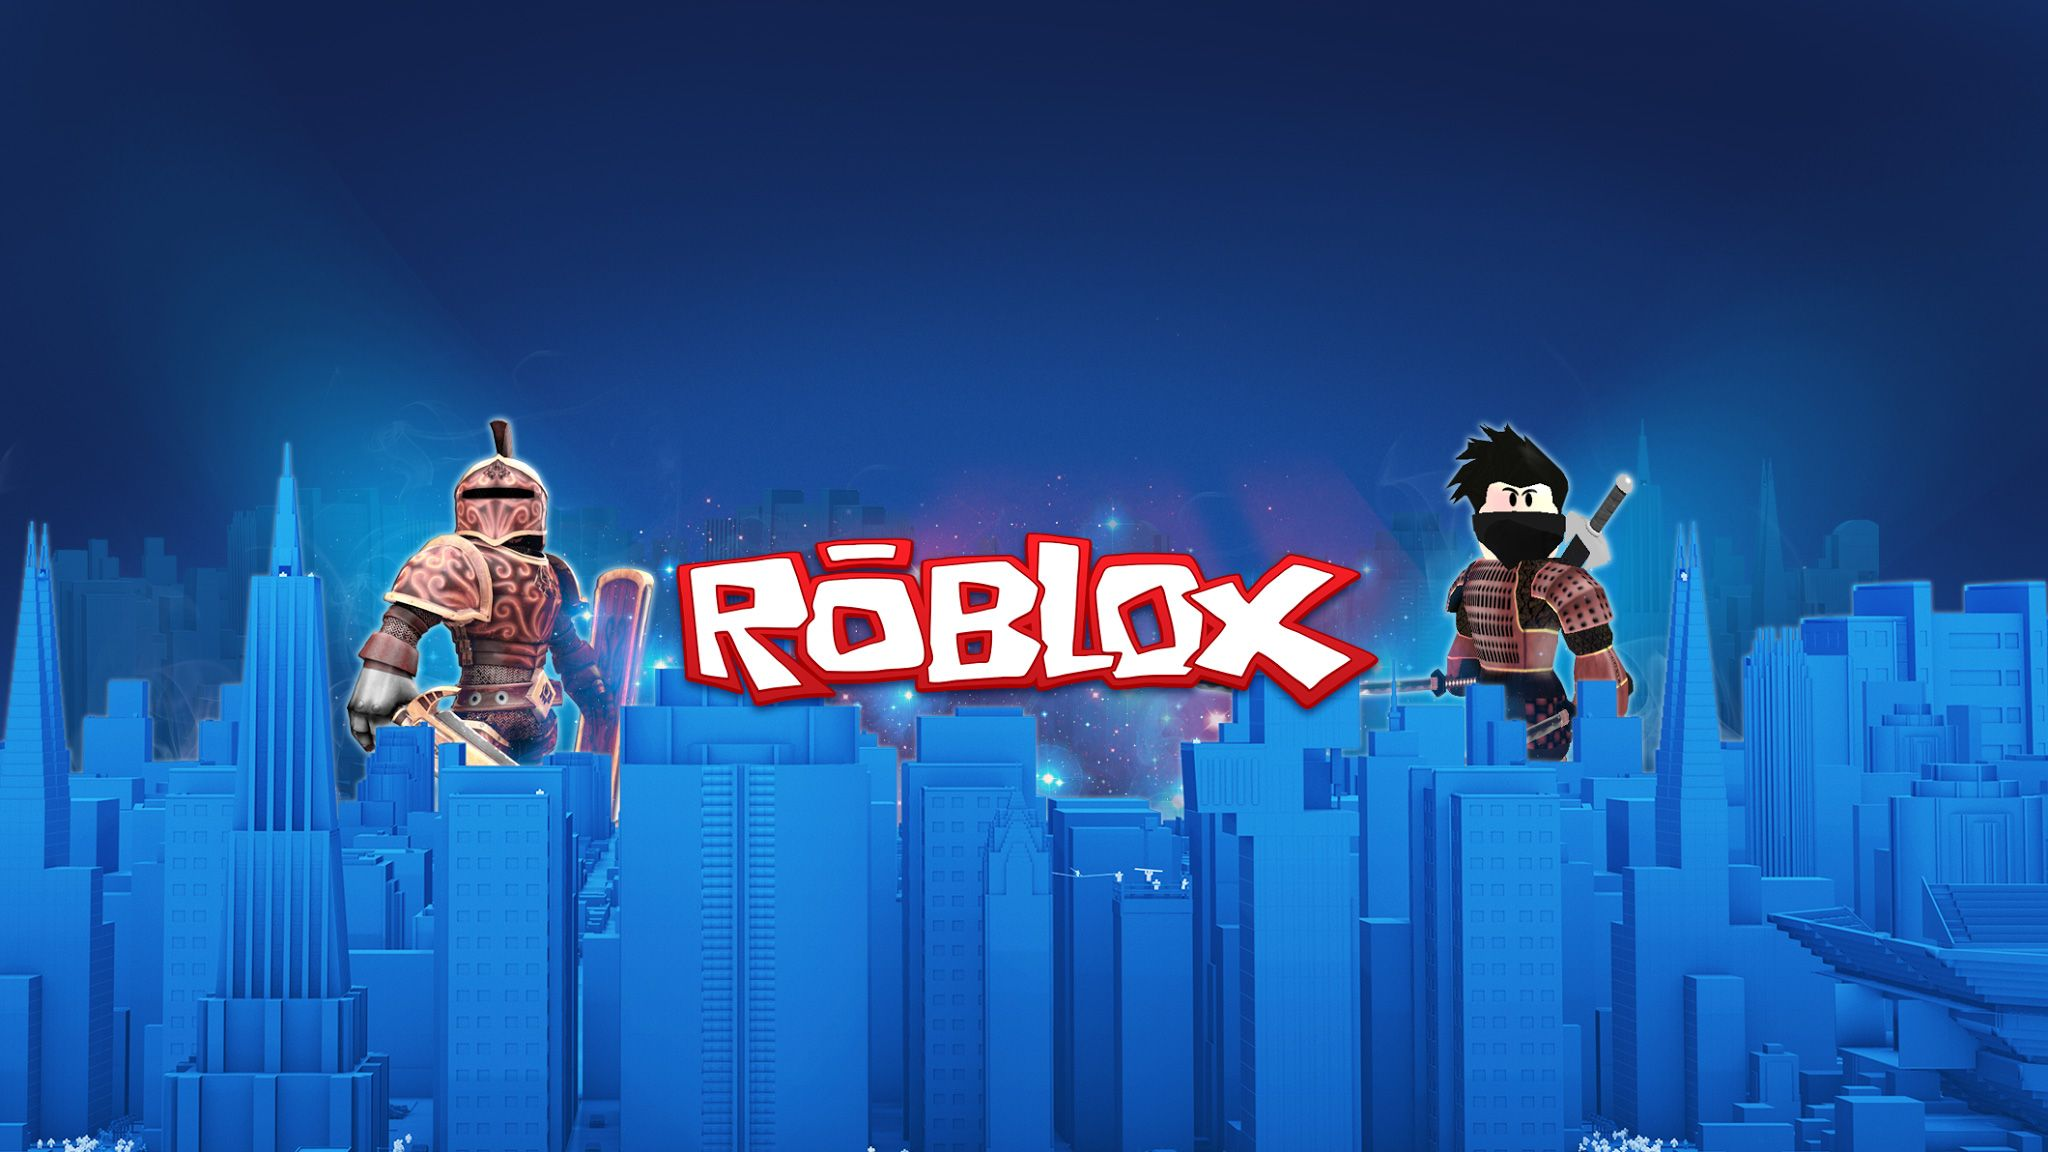 roblox player image